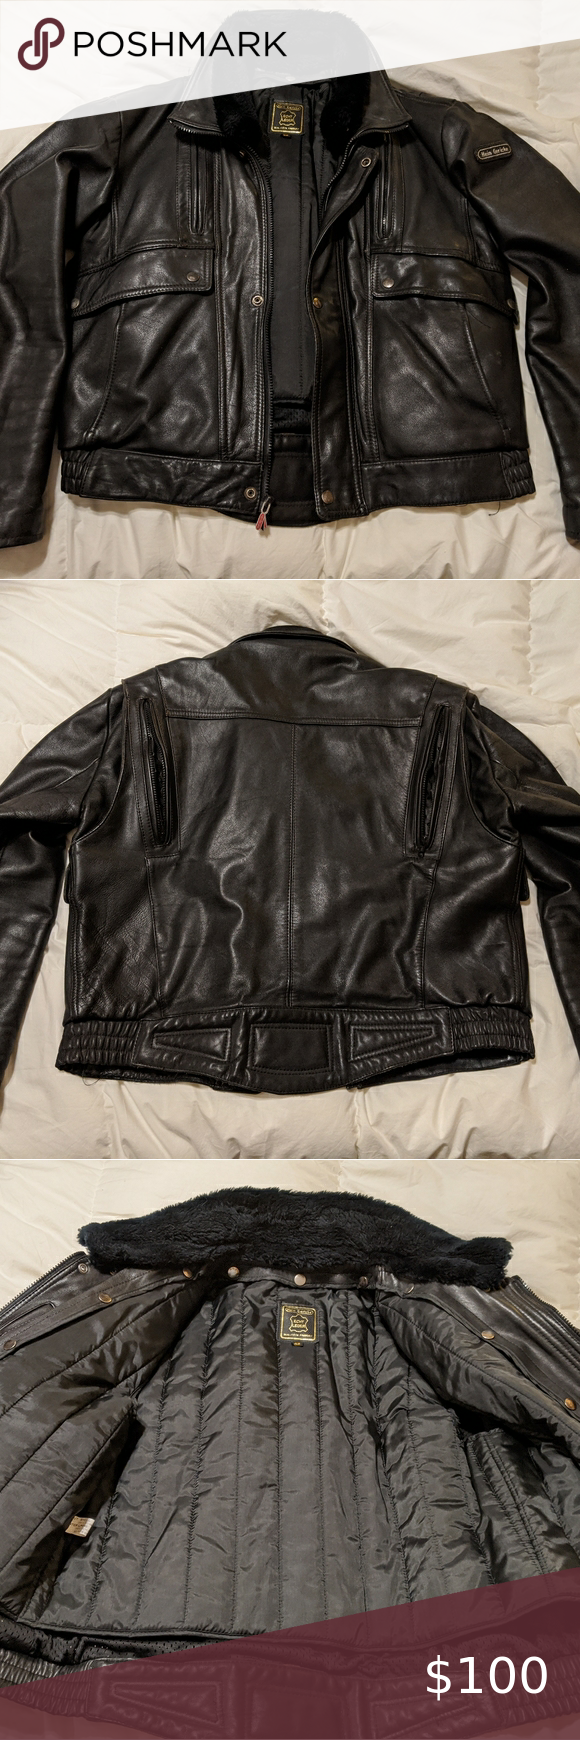 Leather Jacket Hein Gericke (motorcycle jacket) Hein